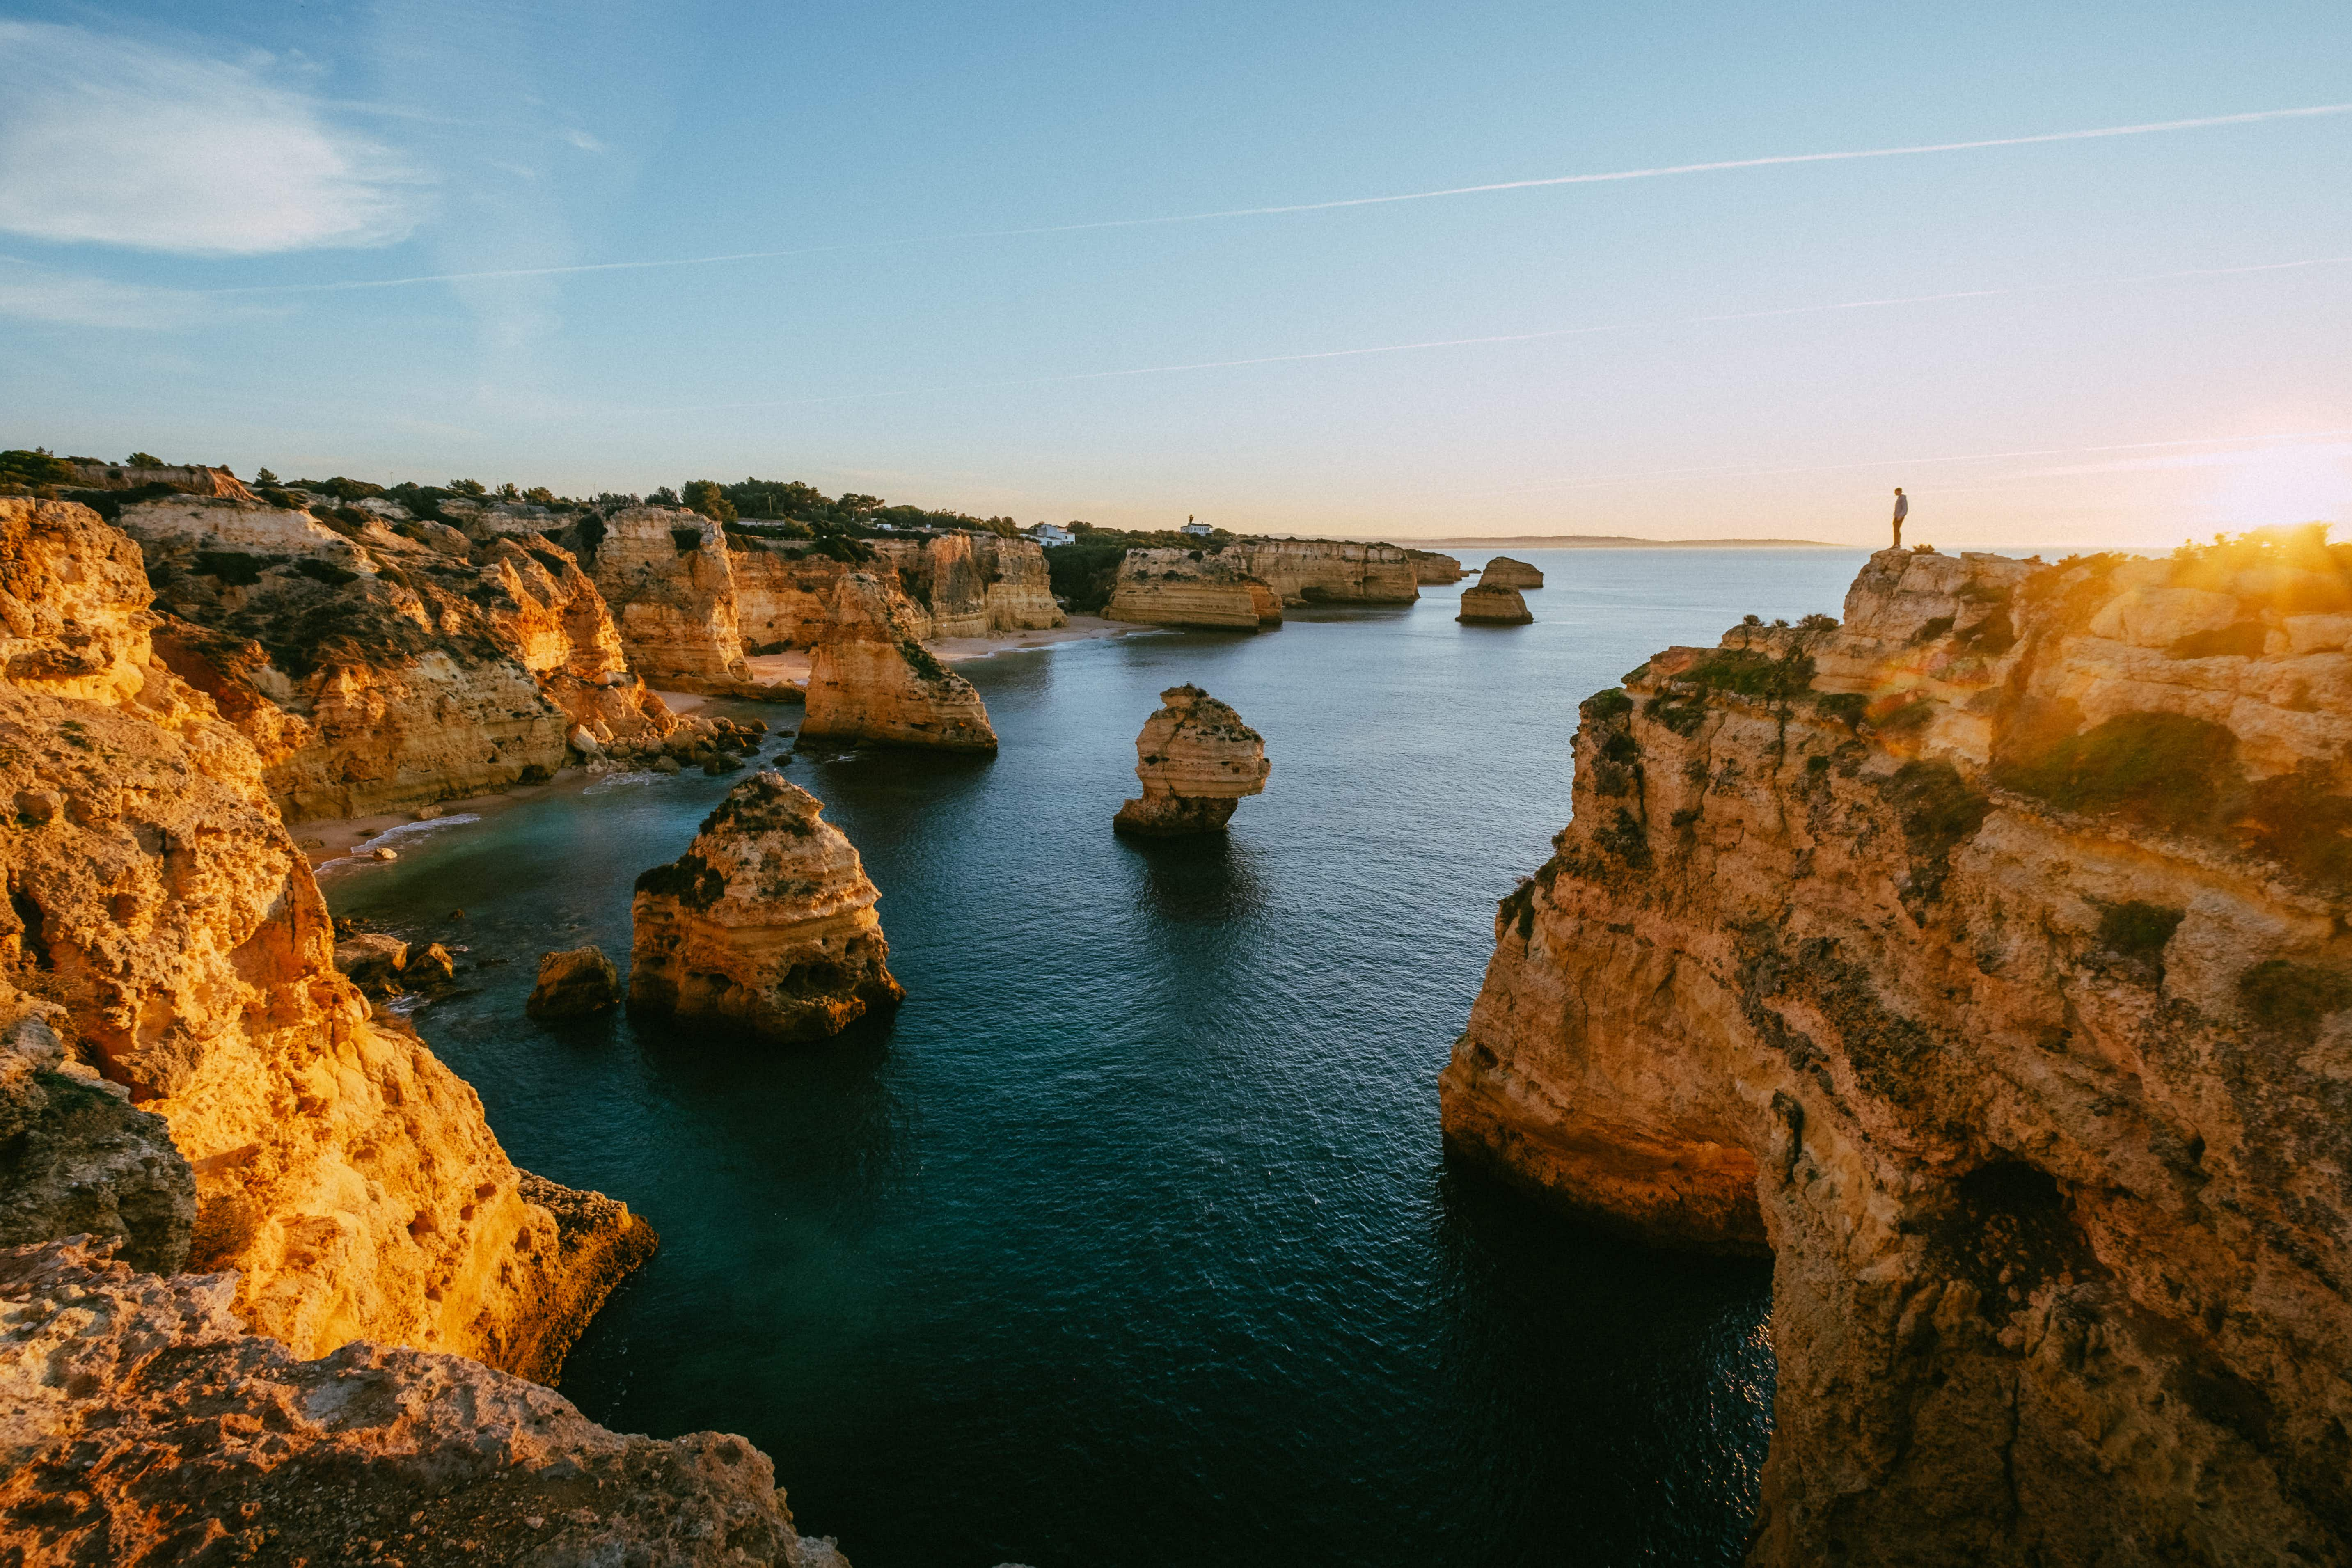 7 incredible Instagram spots in the Algarve